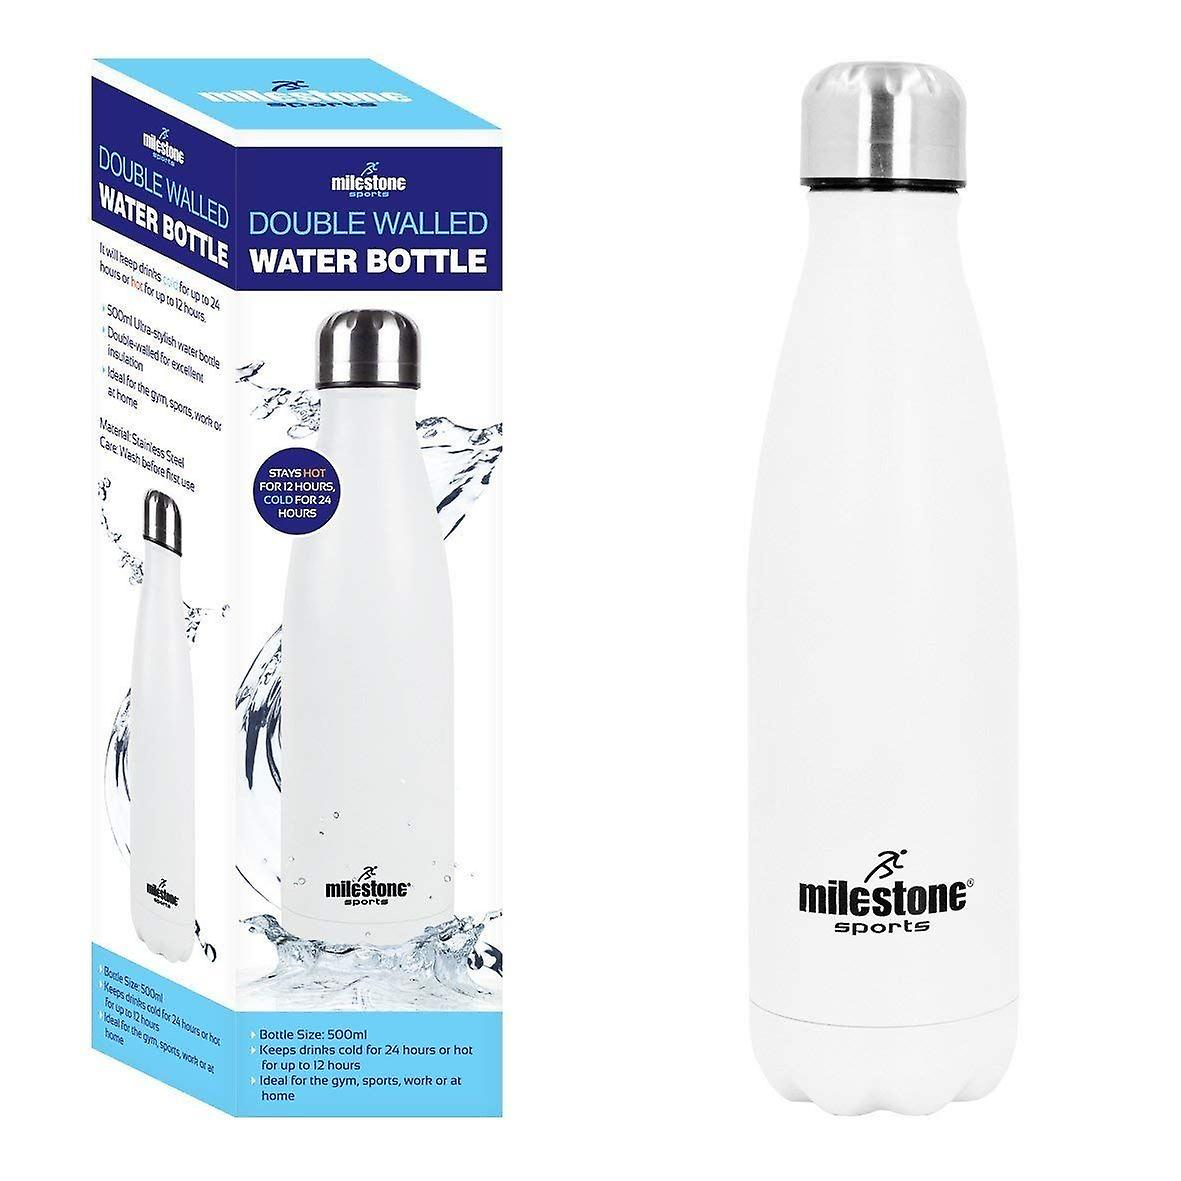 White Water Bottle 500ml BPA Free Stainless Steel Vacuum Insulated Double Wall Hot & Cold Sports Drinks Bottle